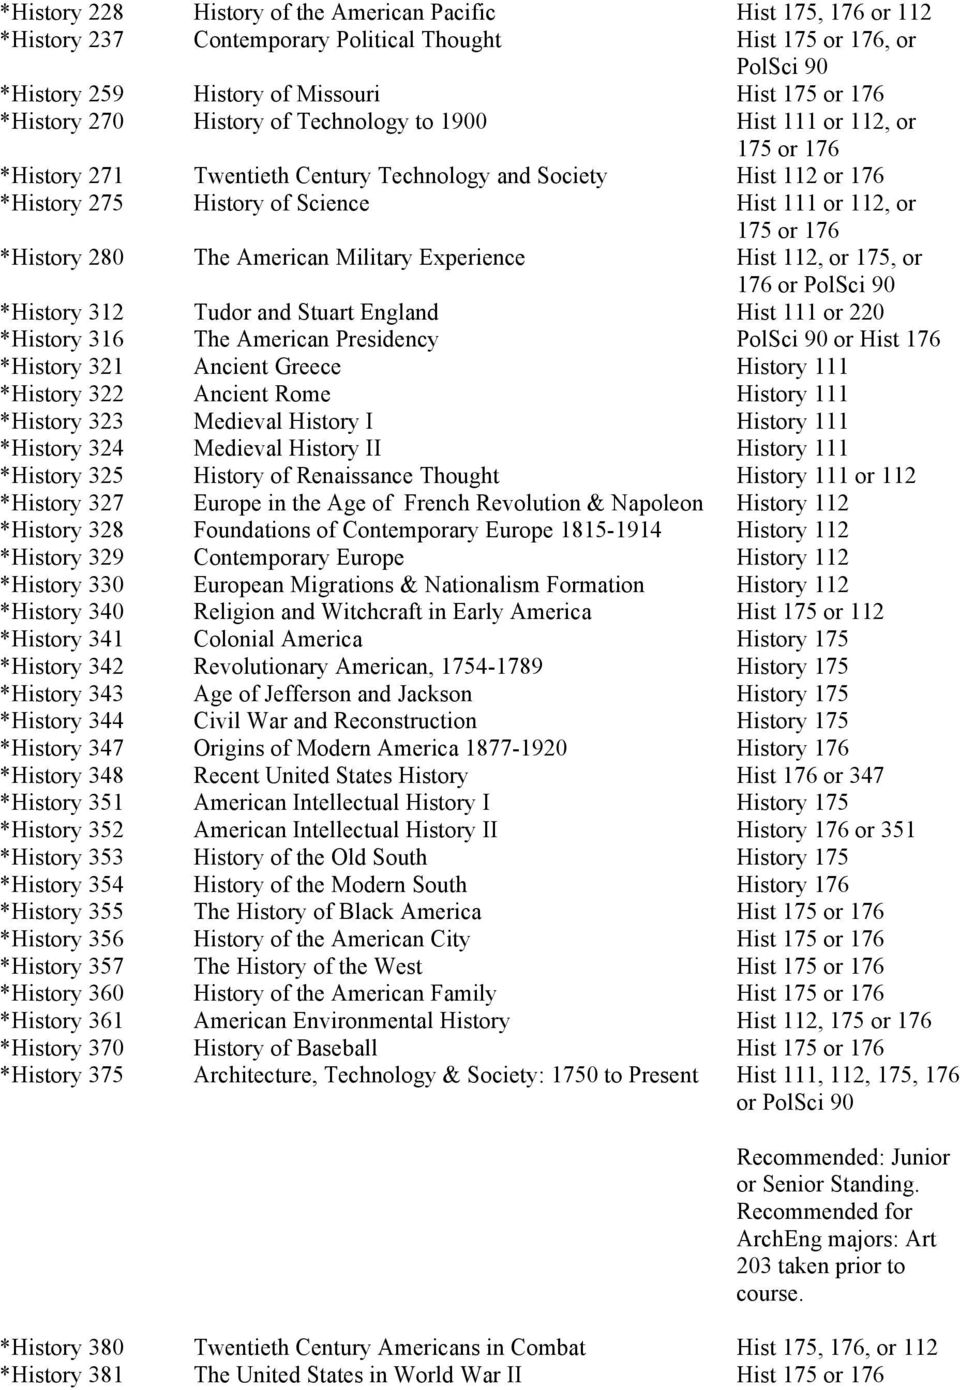 *History 280 The American Military Experience Hist 112, or 175, or 176 or PolSci 90 *History 312 Tudor and Stuart England Hist 111 or 220 *History 316 The American Presidency PolSci 90 or Hist 176